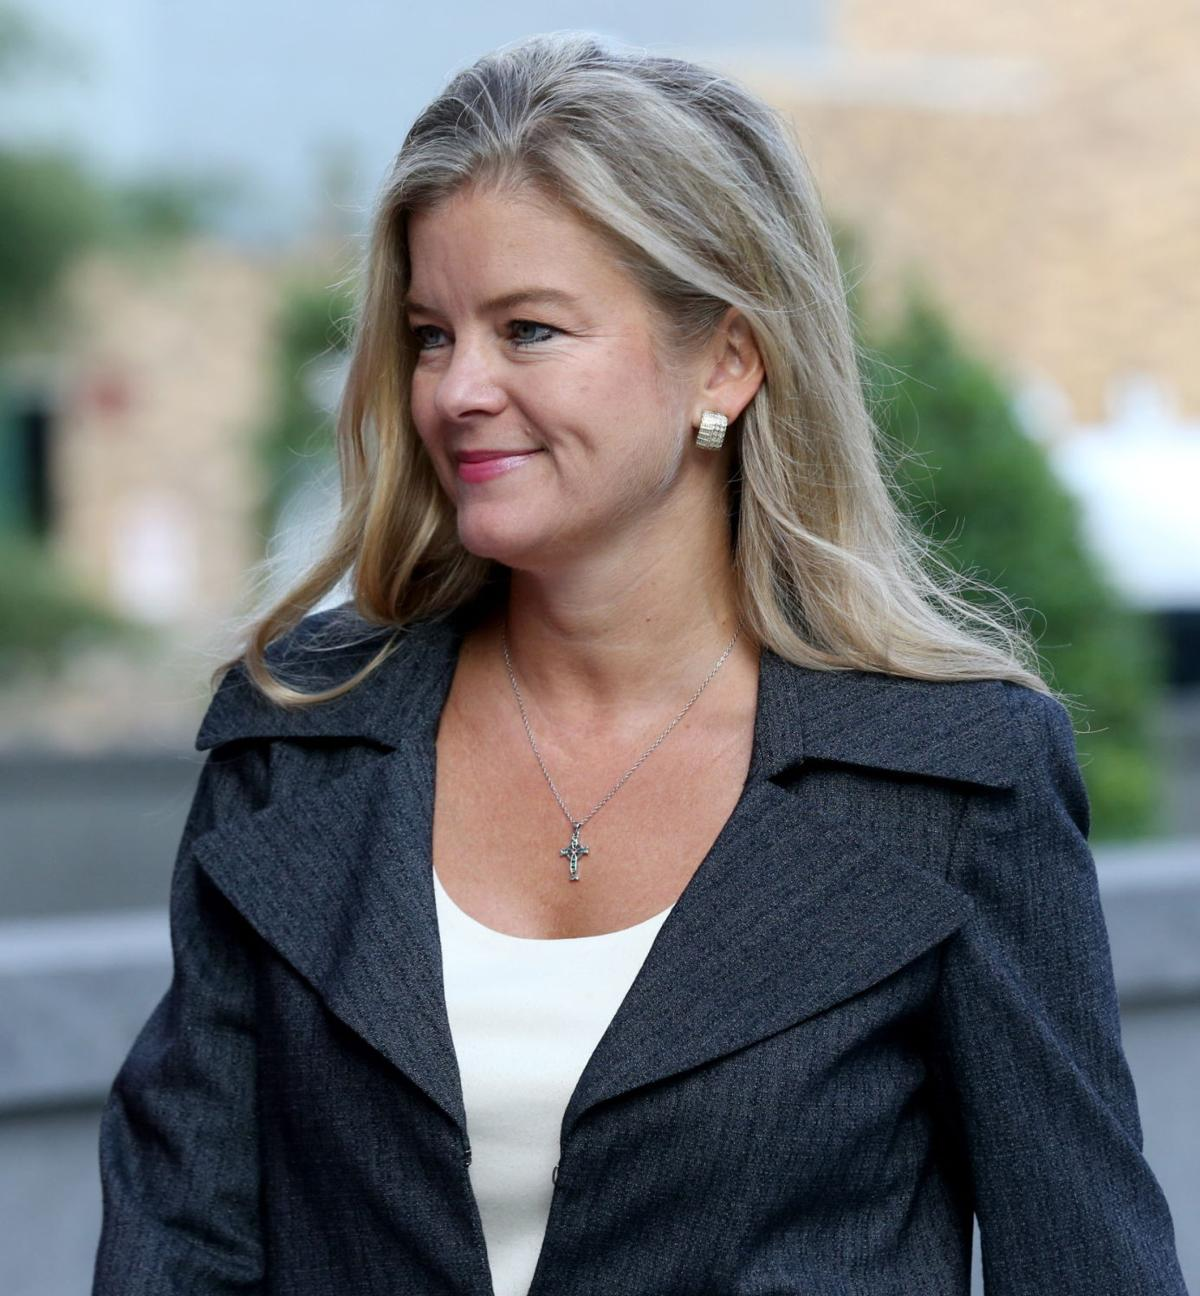 Bob McDonnell's sister: Loans were in plan for joint venture